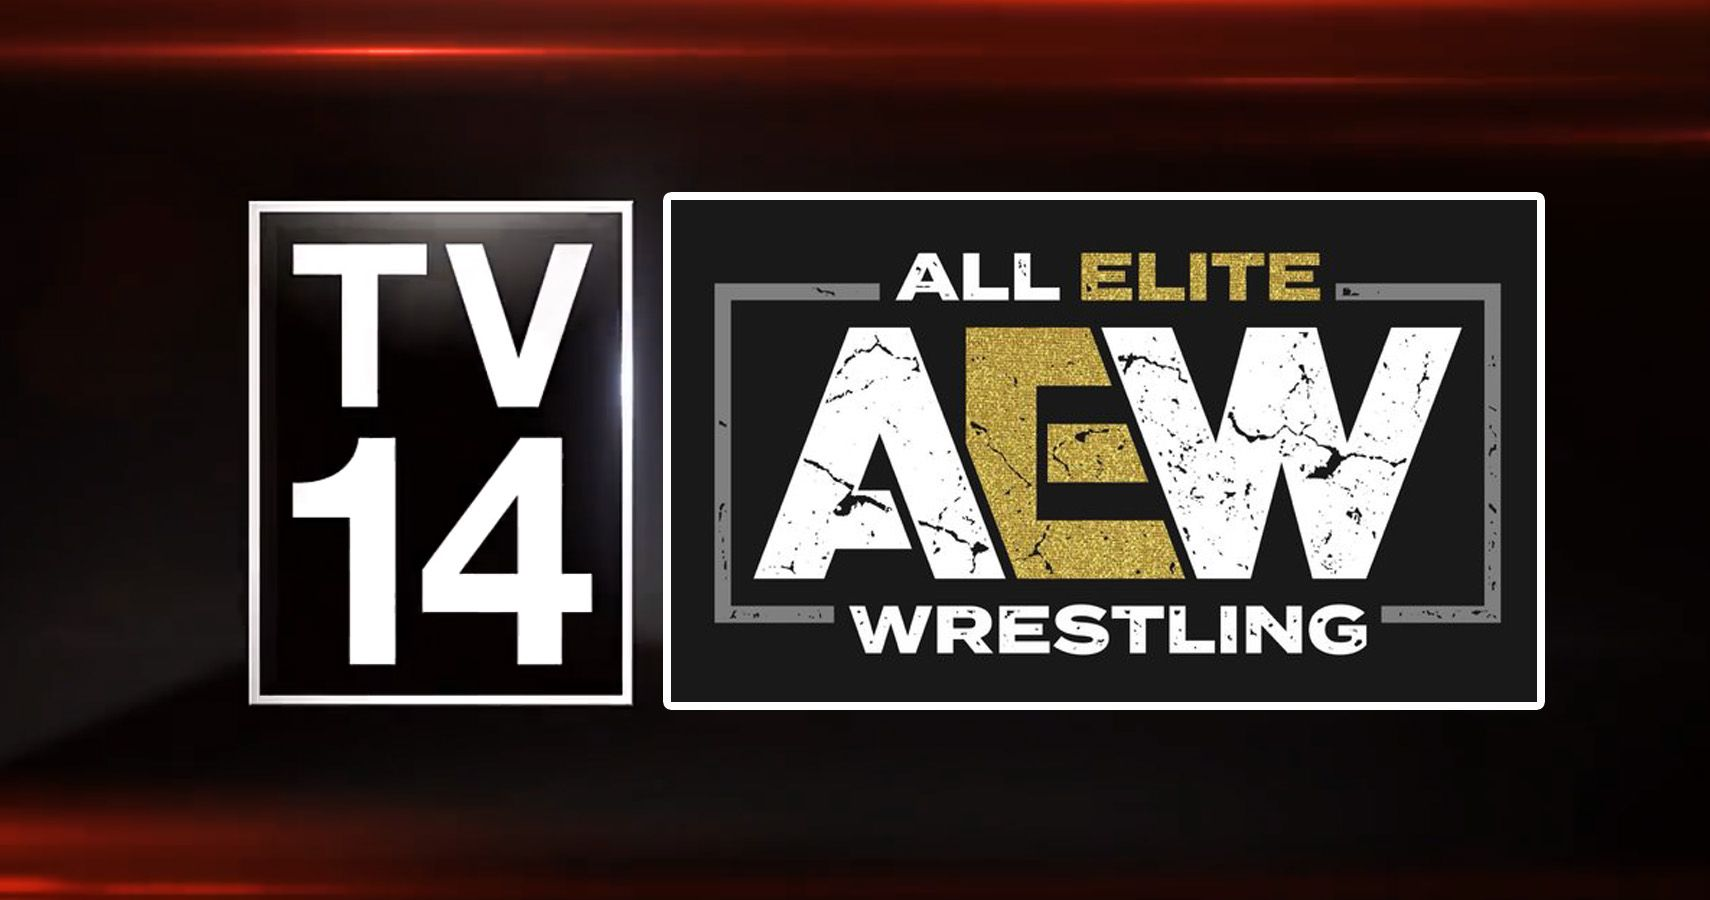 AEW Show on TNT Will Cater To Older Audience With PG-14 Rating